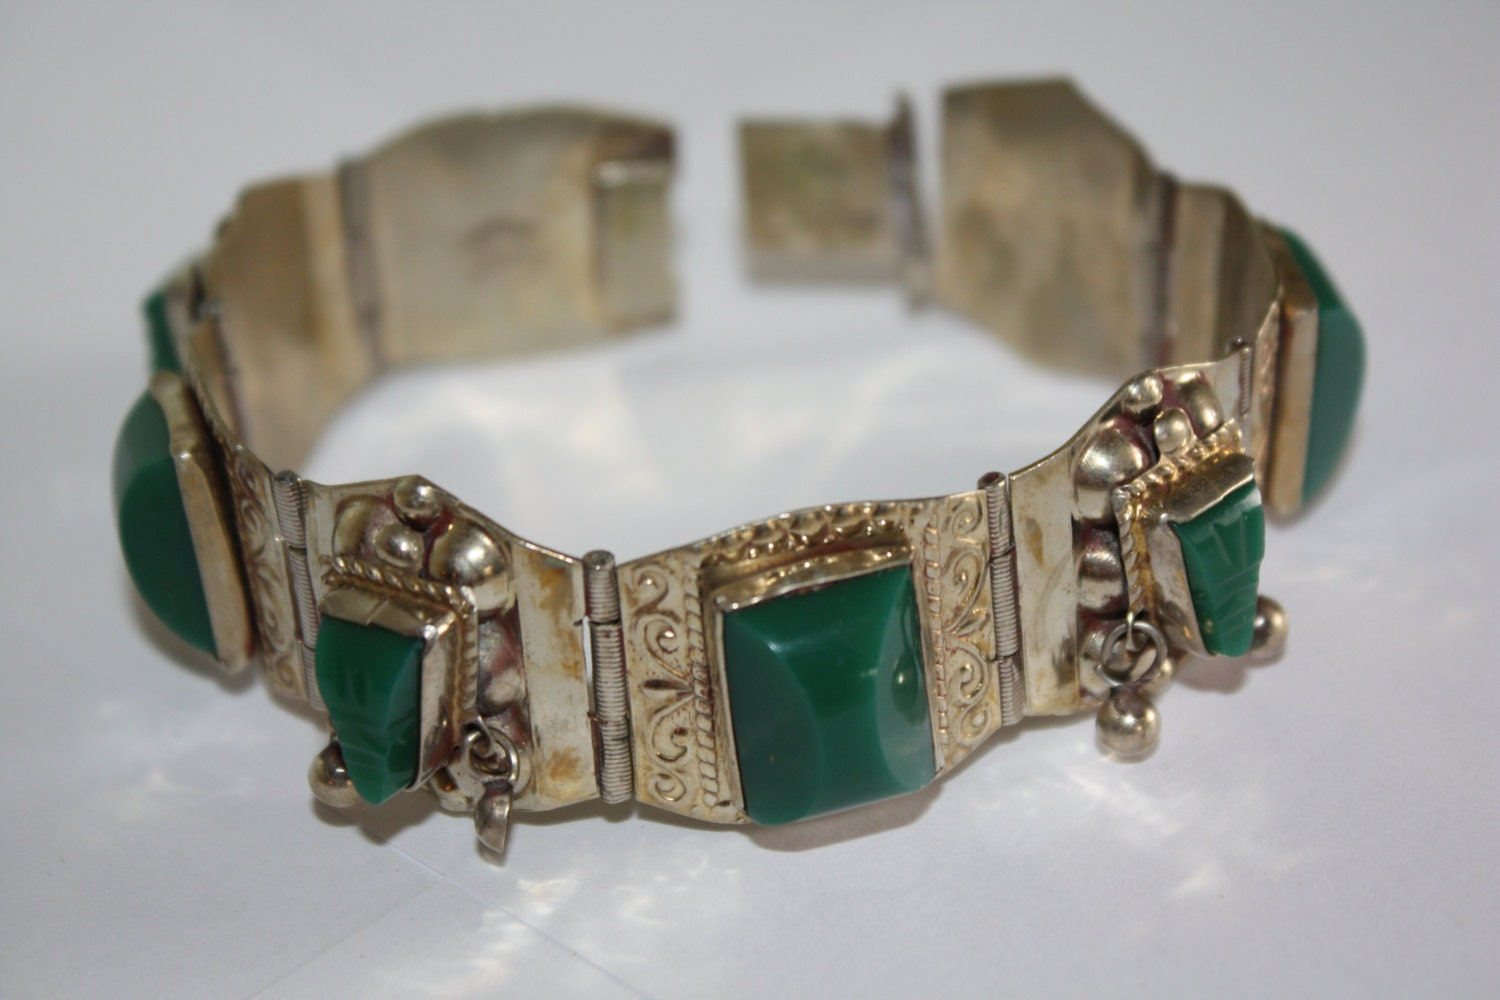 Vintage Bracelet Sterling Mexico Jade 1950s Jewelry